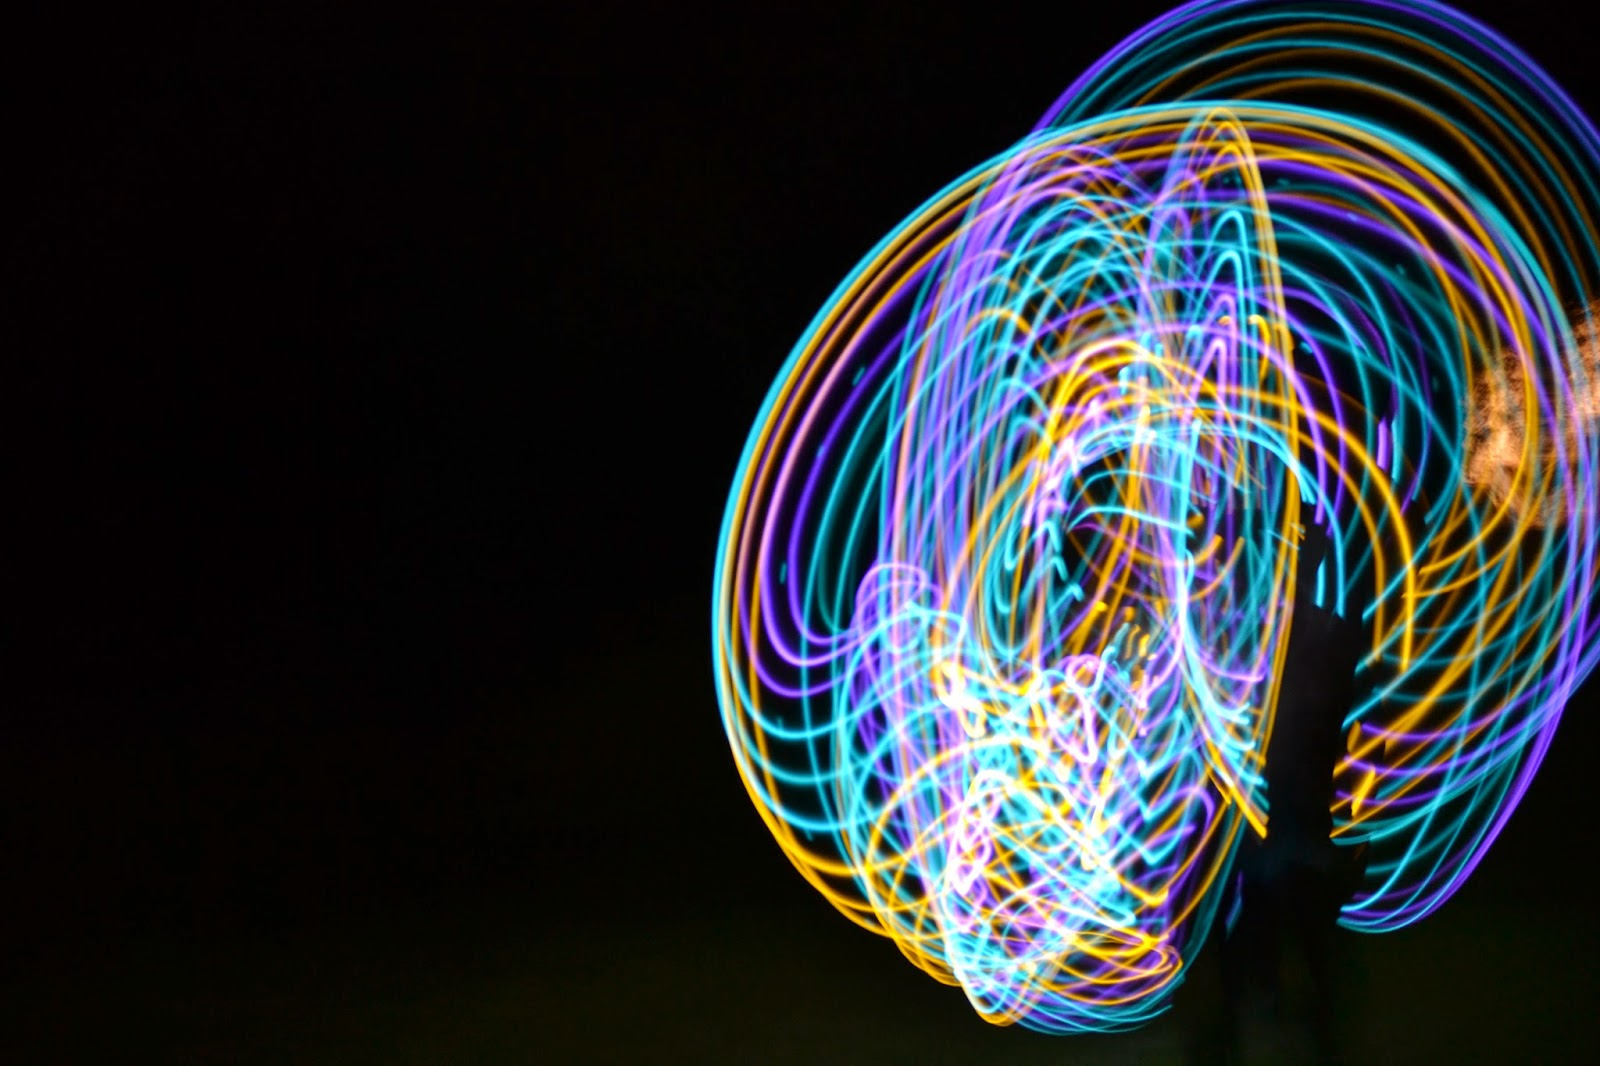 LED Hula Hoop Night Messy Squiggles